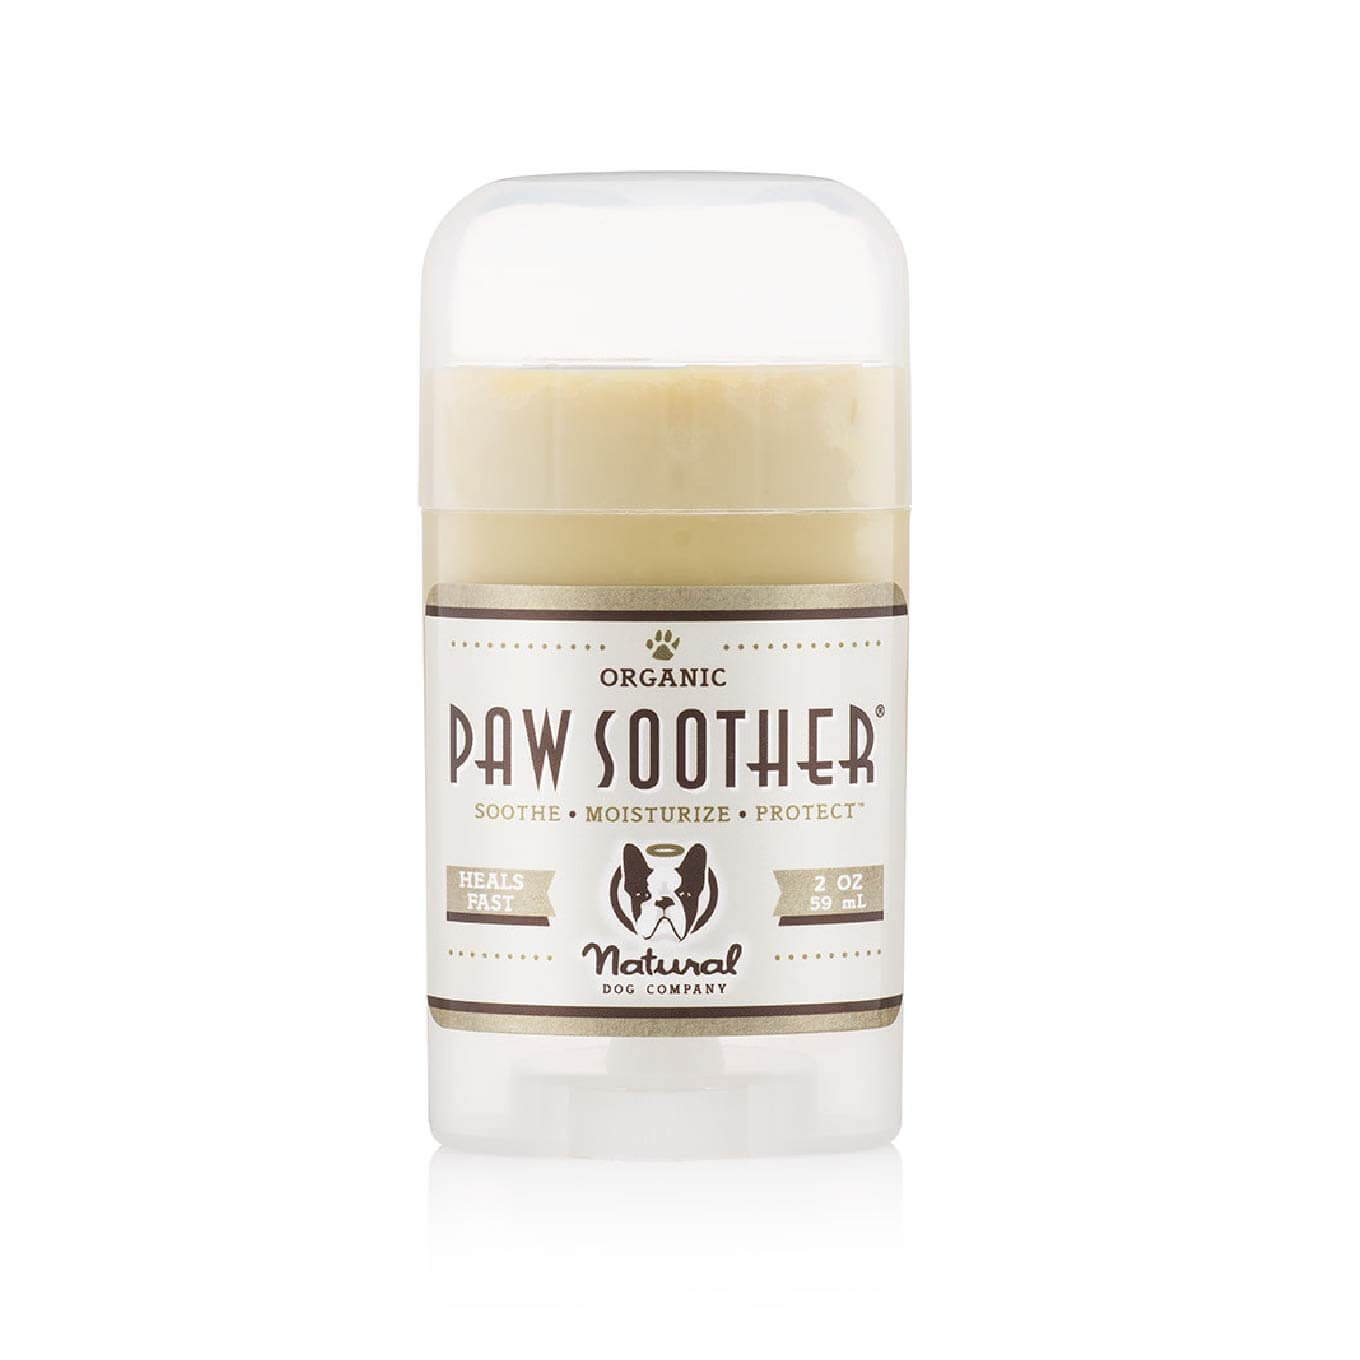 Natural Dog Company Paw Soother - Dogs, Grooming Essentials, Natural Dog Company, New, Skin - Shop Vanillapup